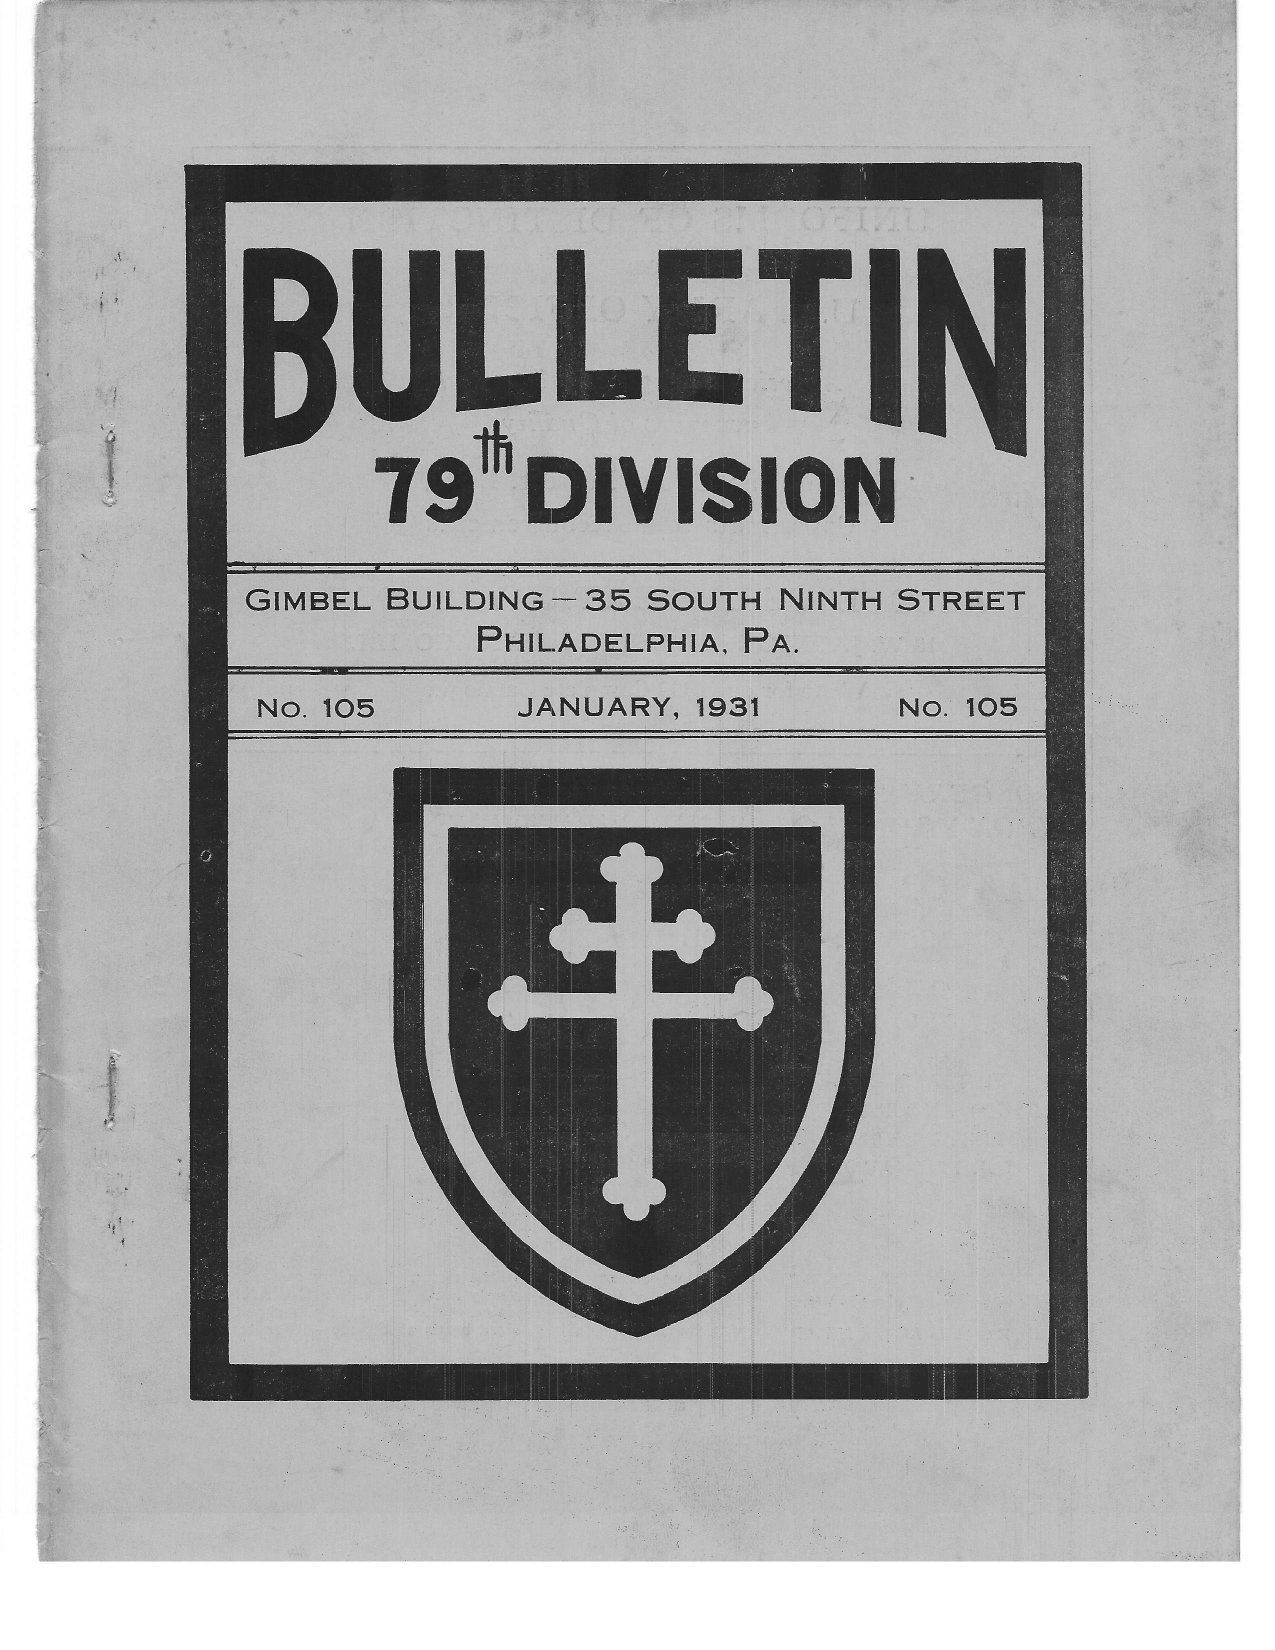 79th Division Bulletin January 1931 Number 105